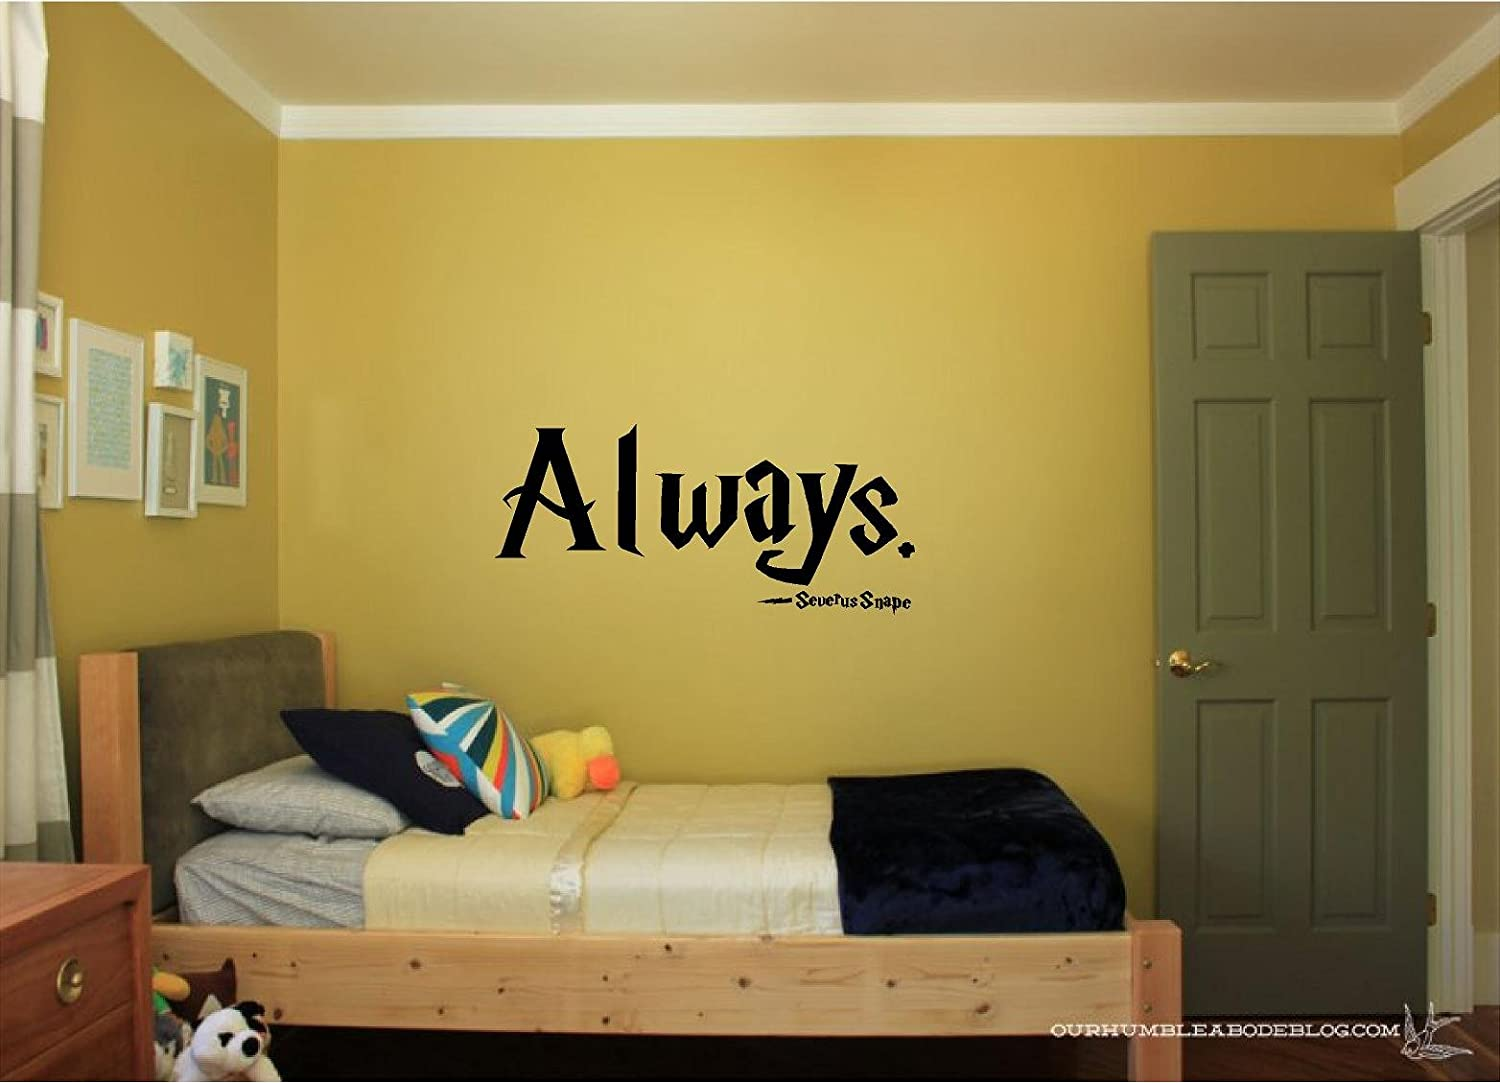 Harry Potter Wall Decals - purplebirdblog.com -